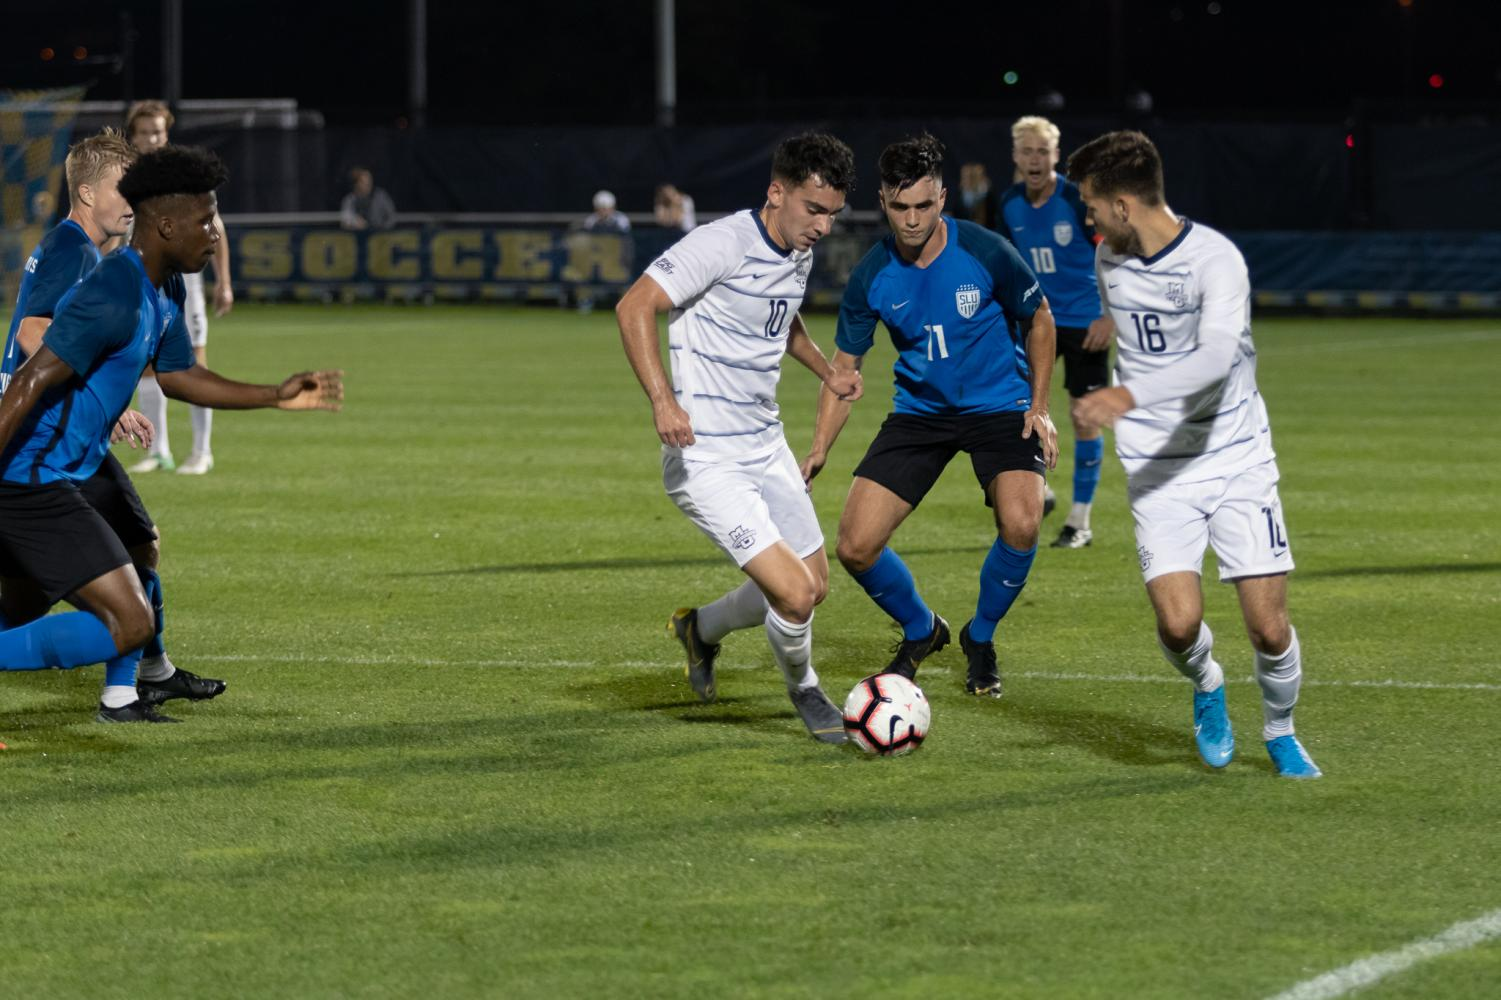 Senior captain Luka Prpa played in 63 minutes and scored his first goal of the season Tuesday night against Saint Louis.